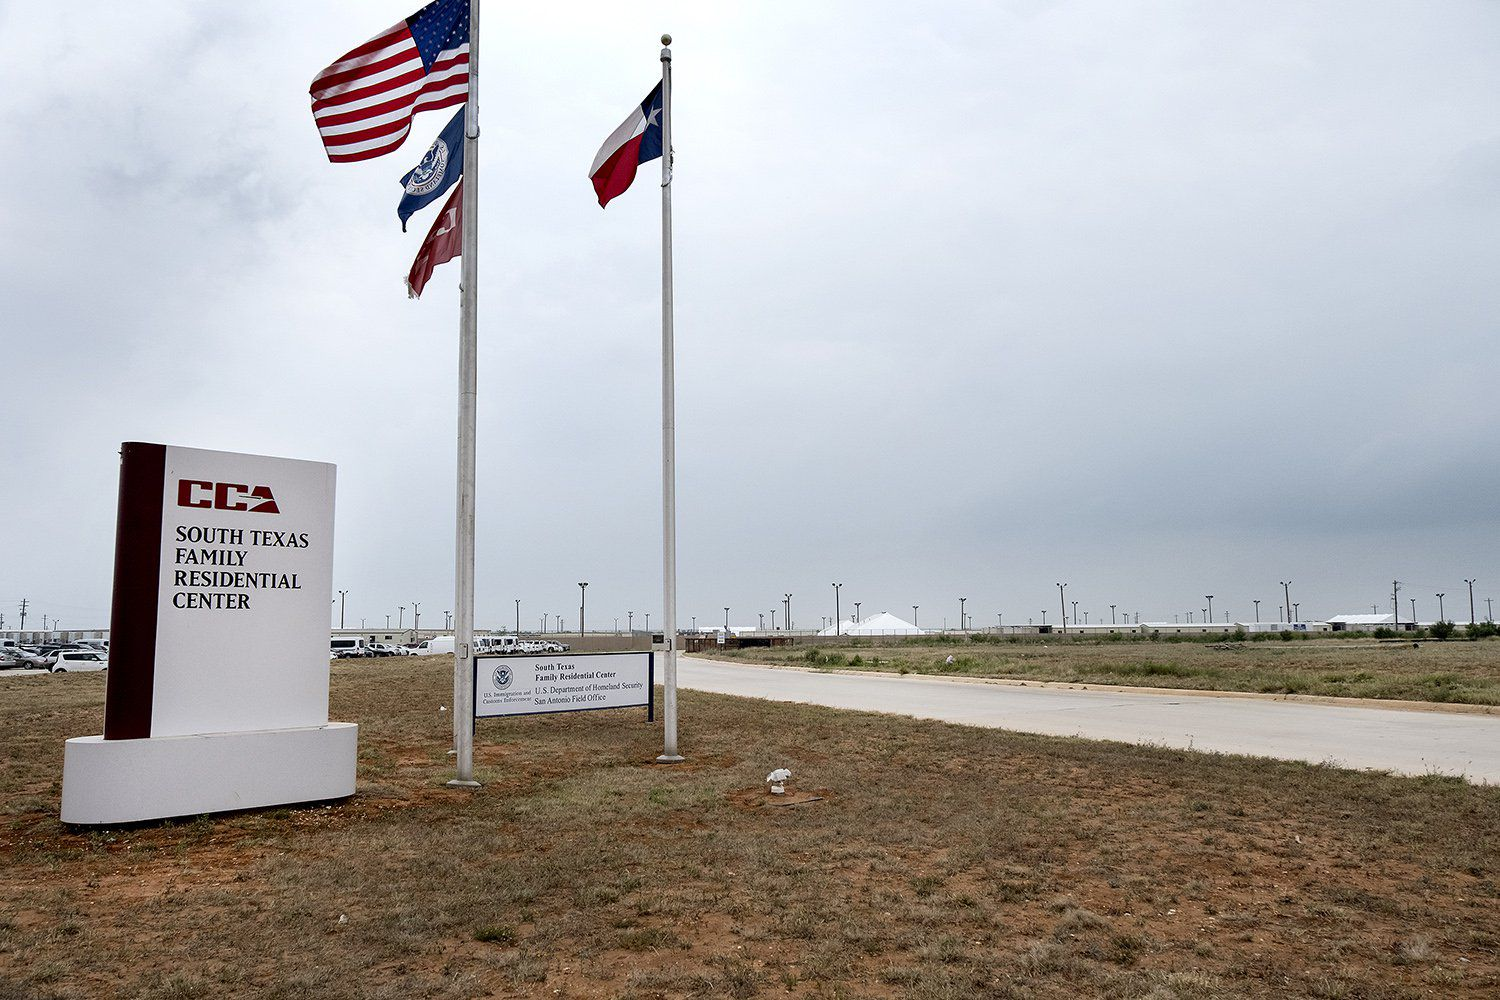 The South Texas Family Residential Center is an immigrant detention center in Dilley, about 70 miles southwest of San Antonio.